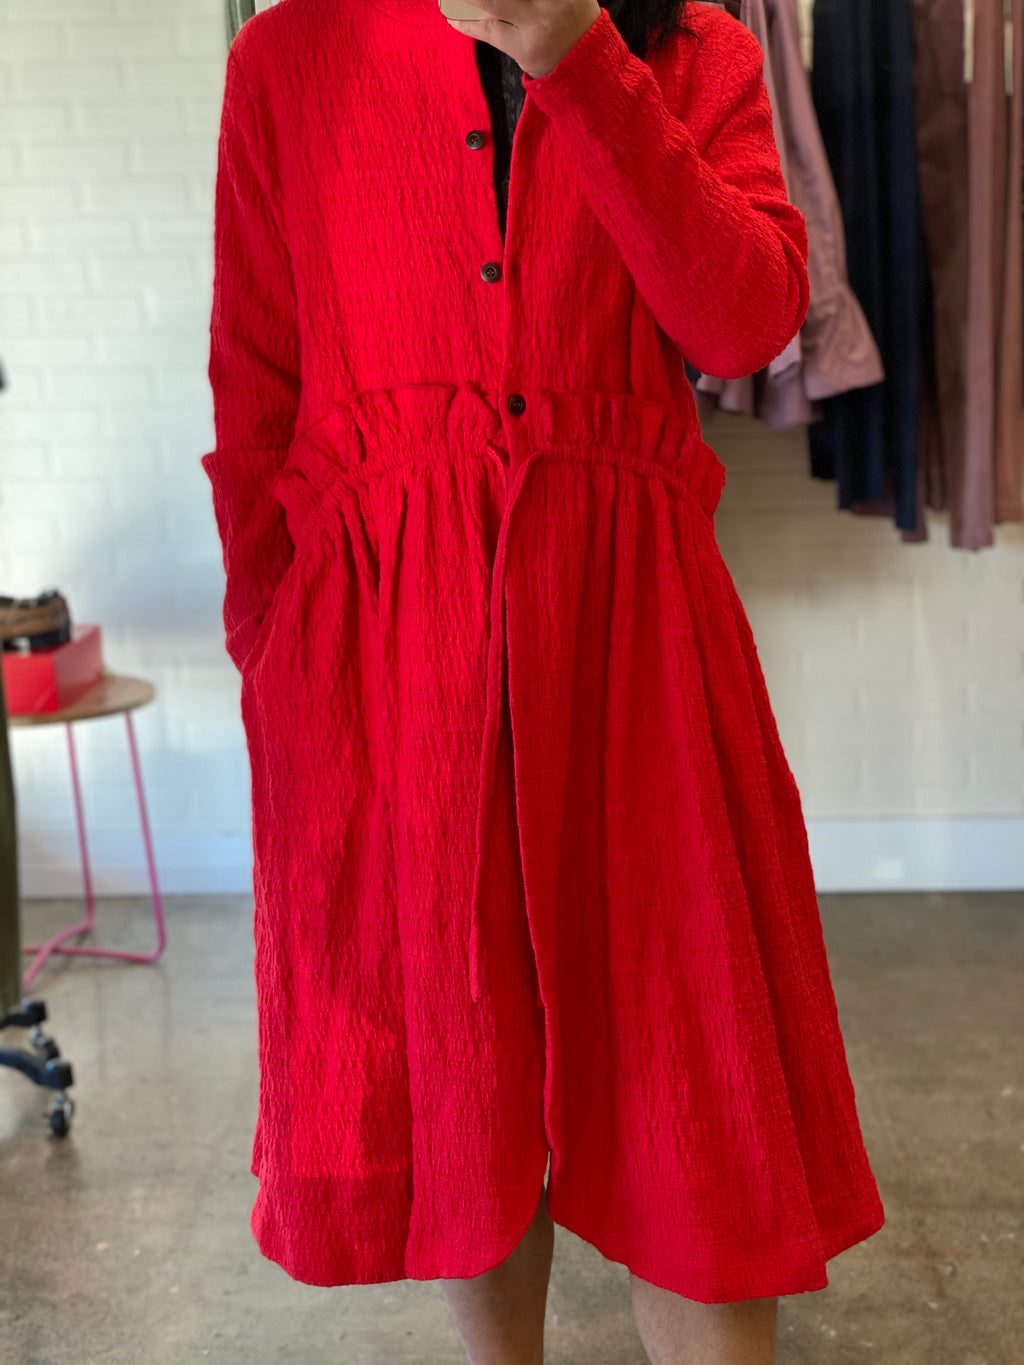 Guan Red Linen Wool Coat with Tie